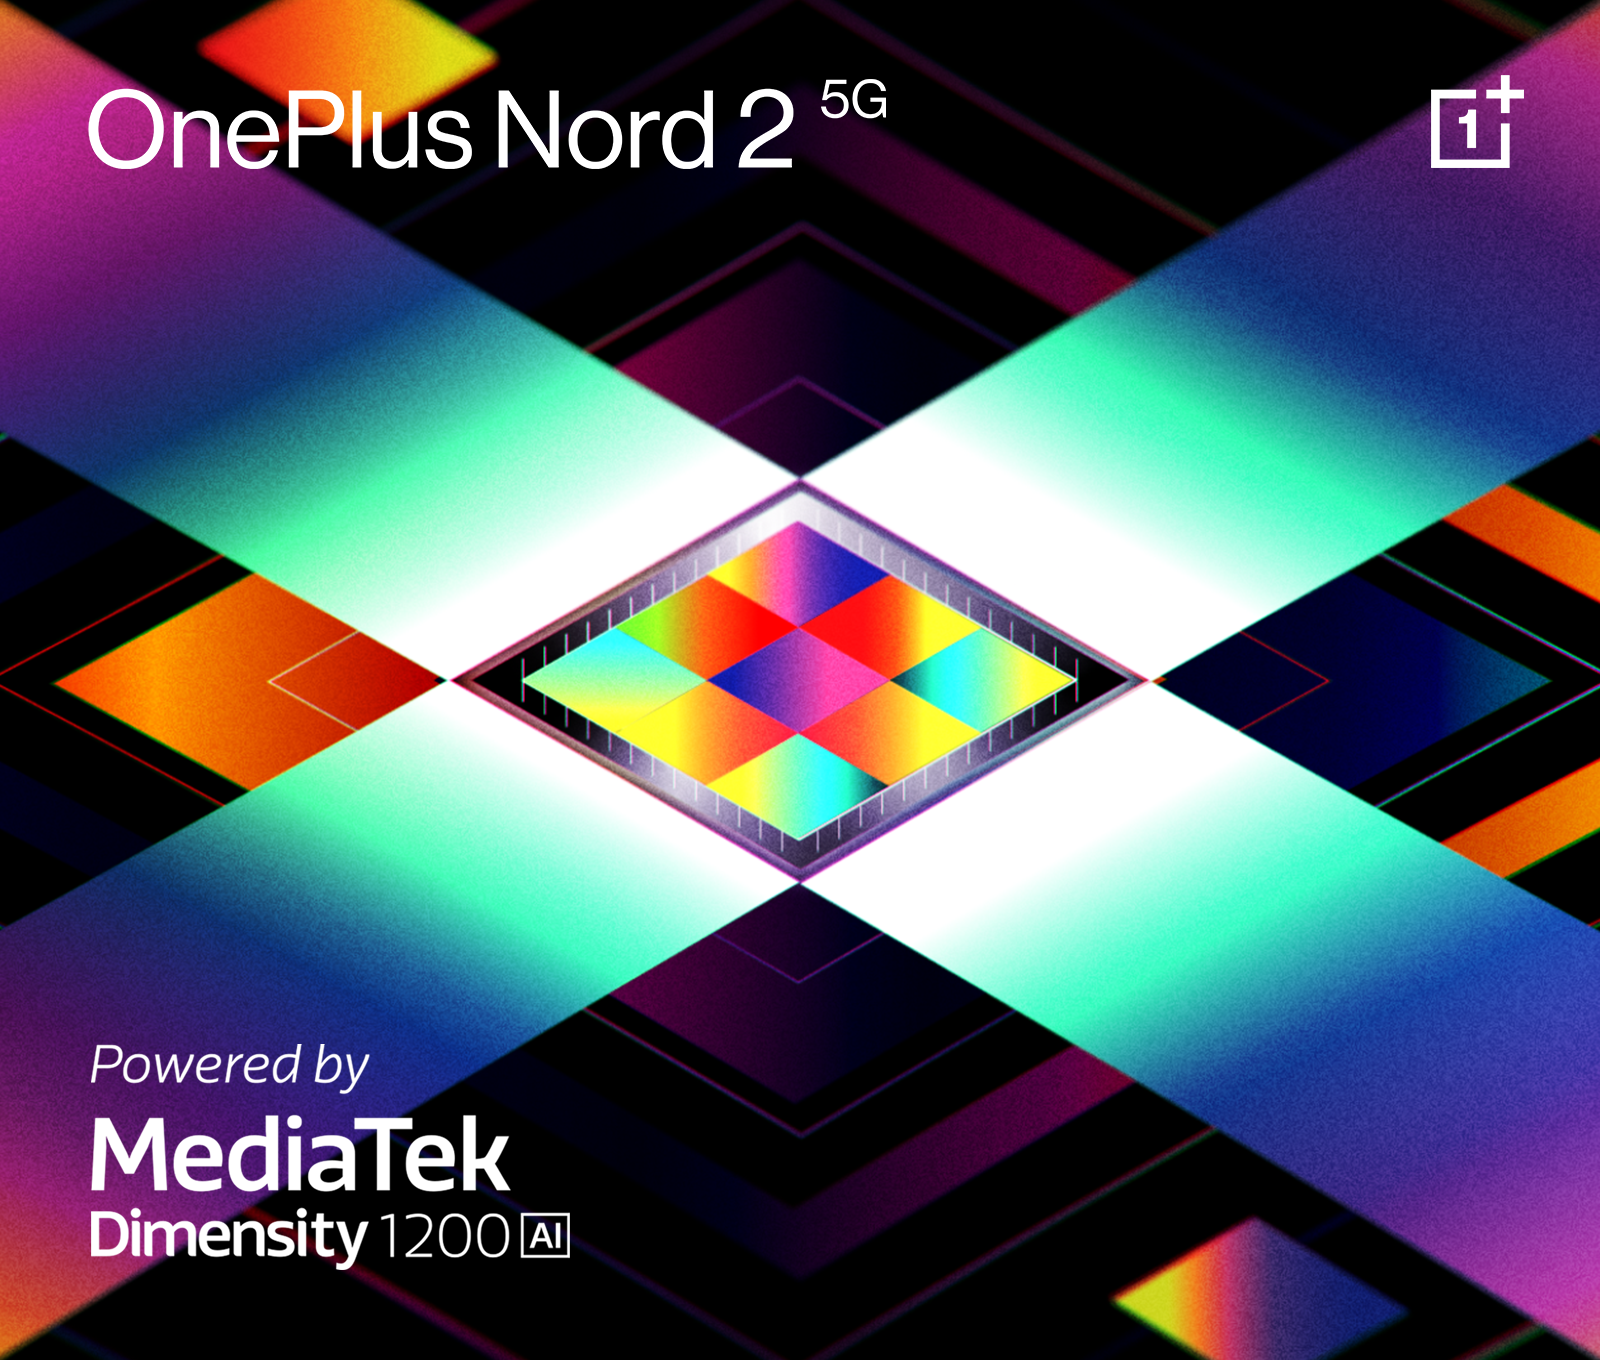 OnePlus Nord 2 5G Dimensity 1200